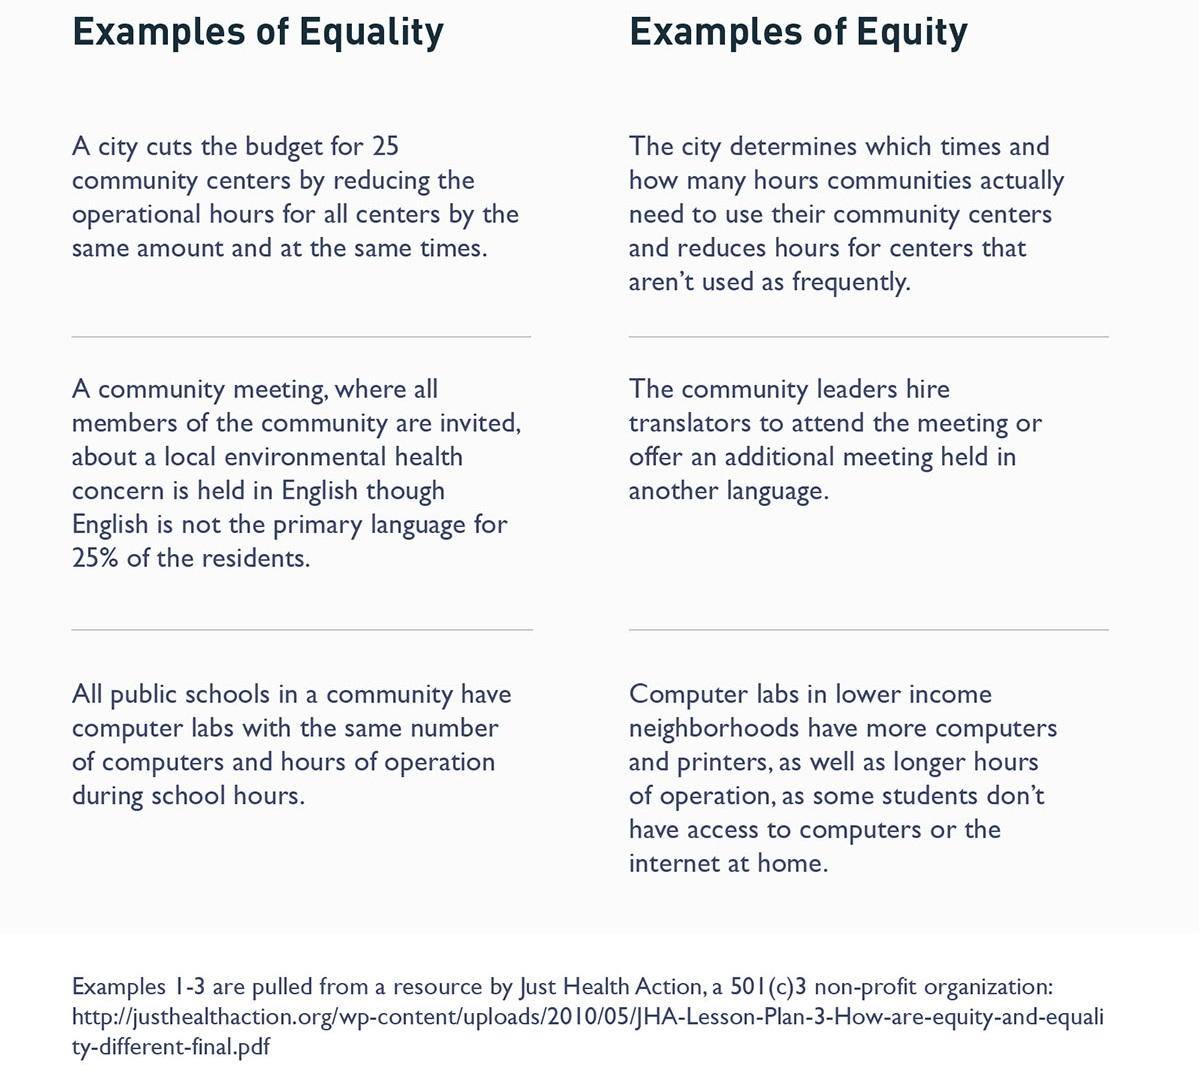 "From ""What's the Difference Between Equity and Equality?"" by Milken Institute School of Public Health at George Washington University. April 2018. Available at  https://publichealthonline.gwu.edu/blog/equity-vs-equality/ . Accessed on July 27, 2019."